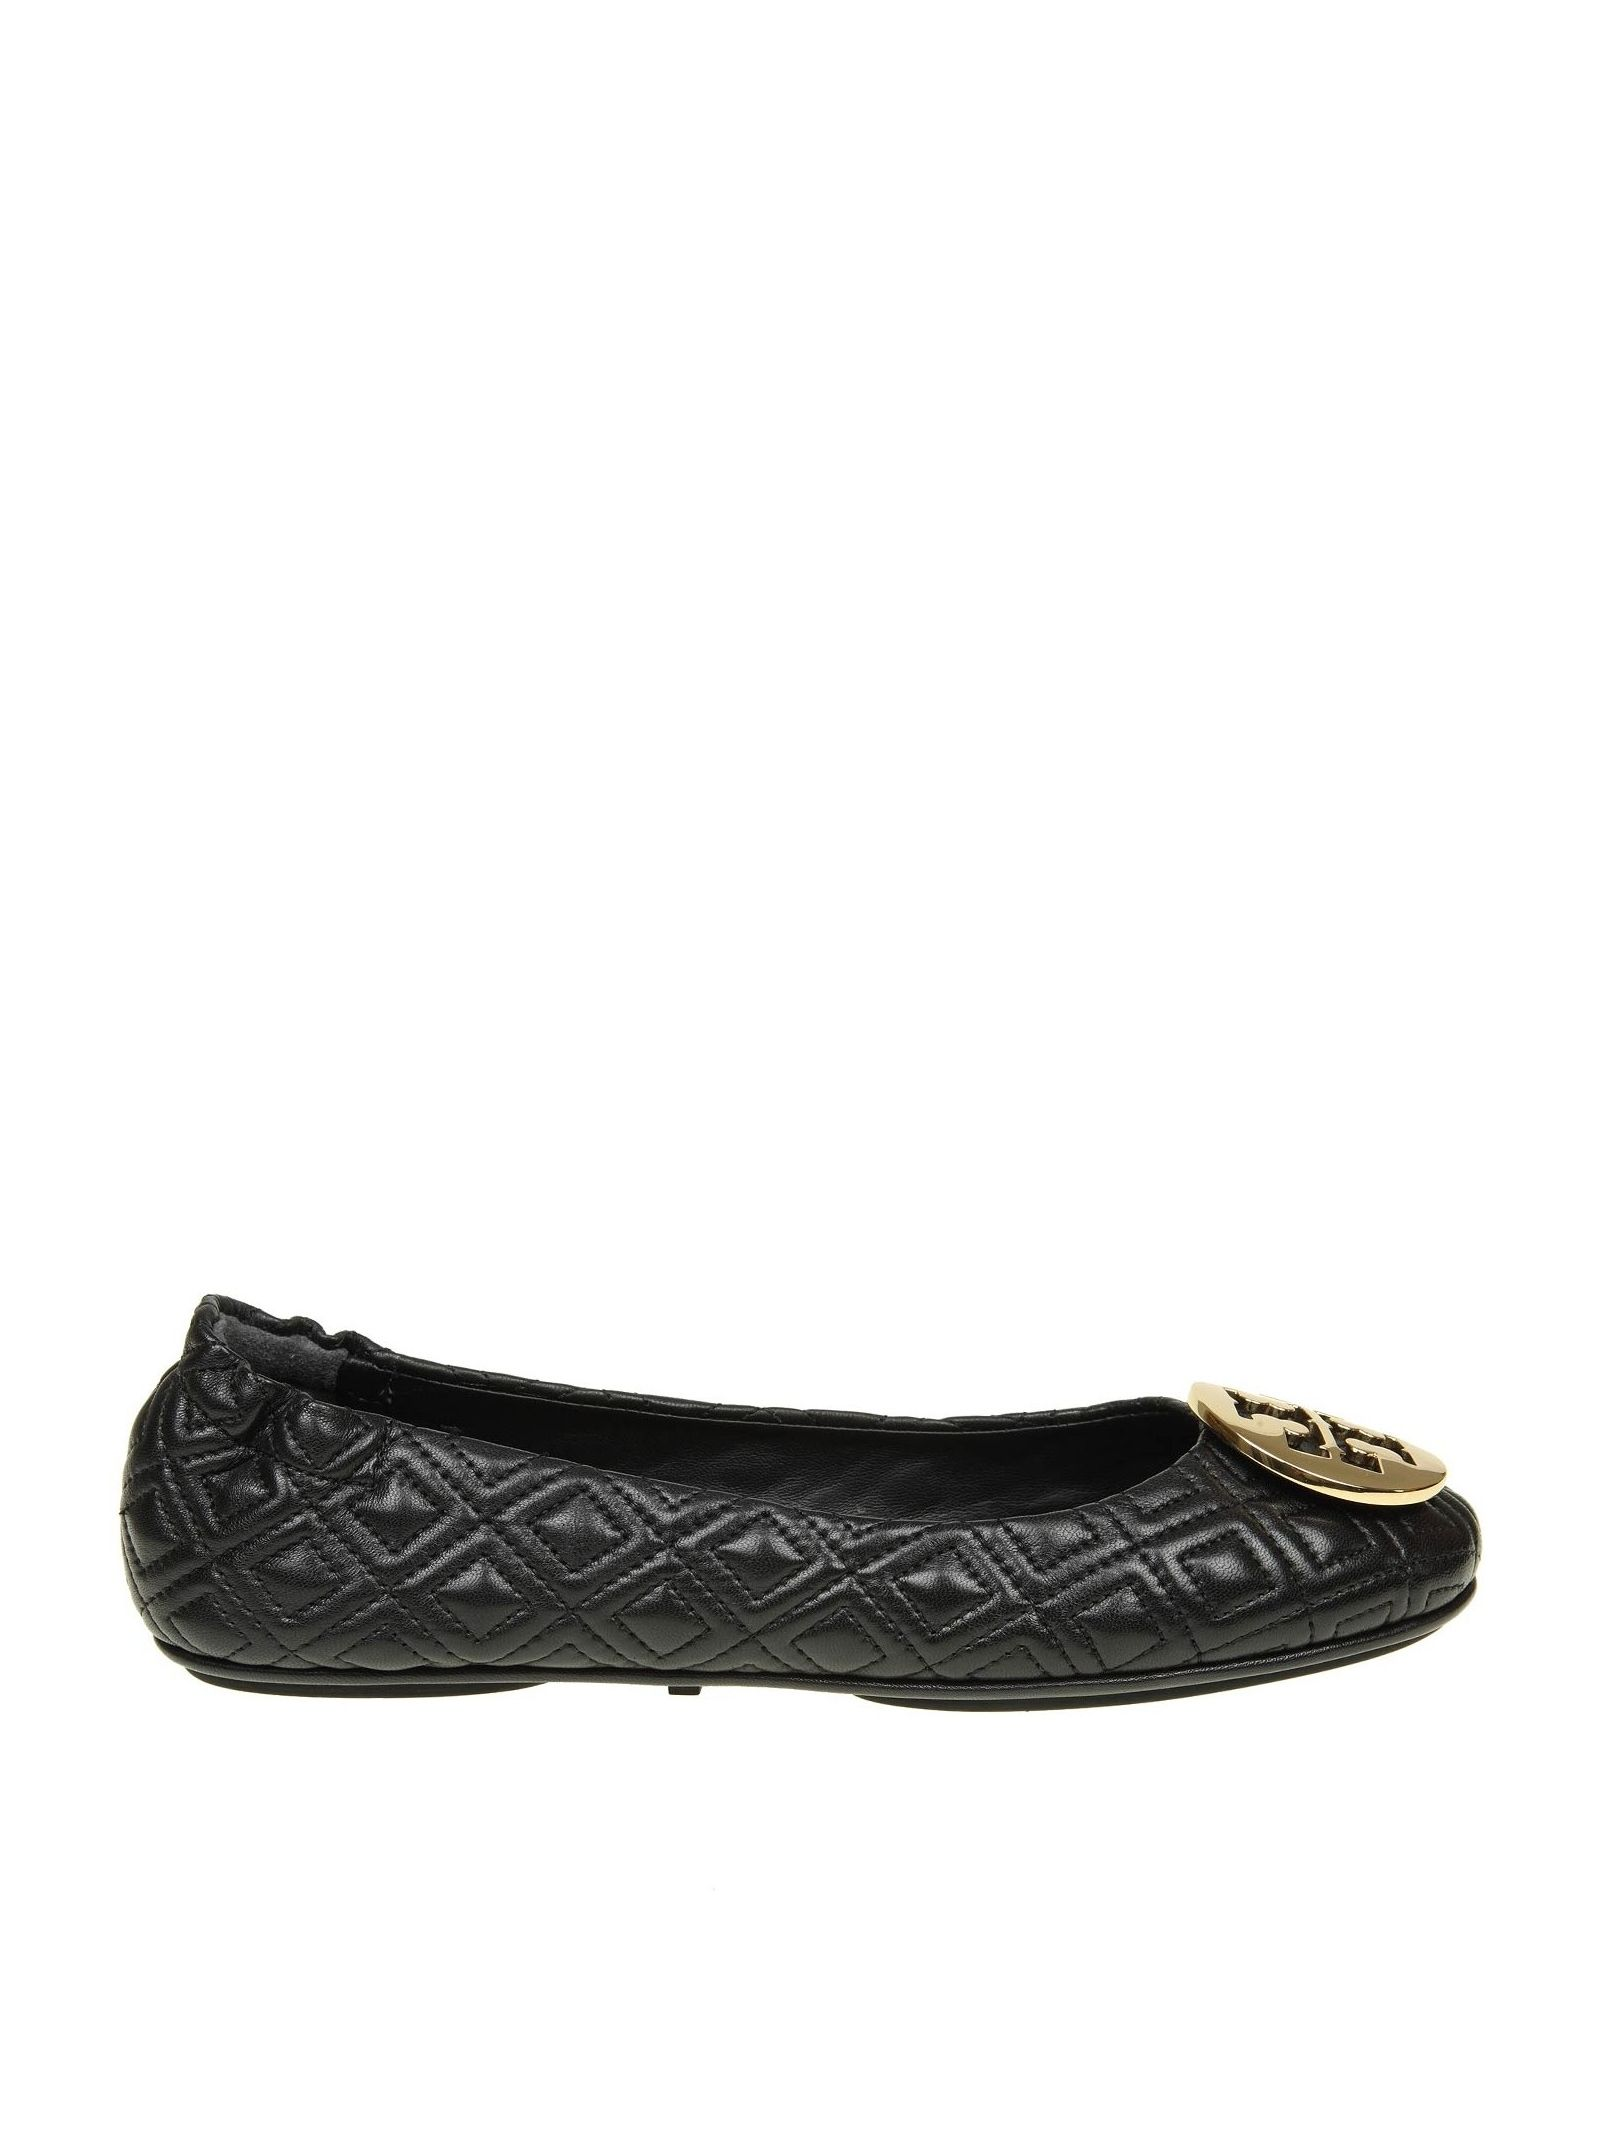 """Tory Burch """"quilted Minnie"""" Ballerina In Black Color Leather"""